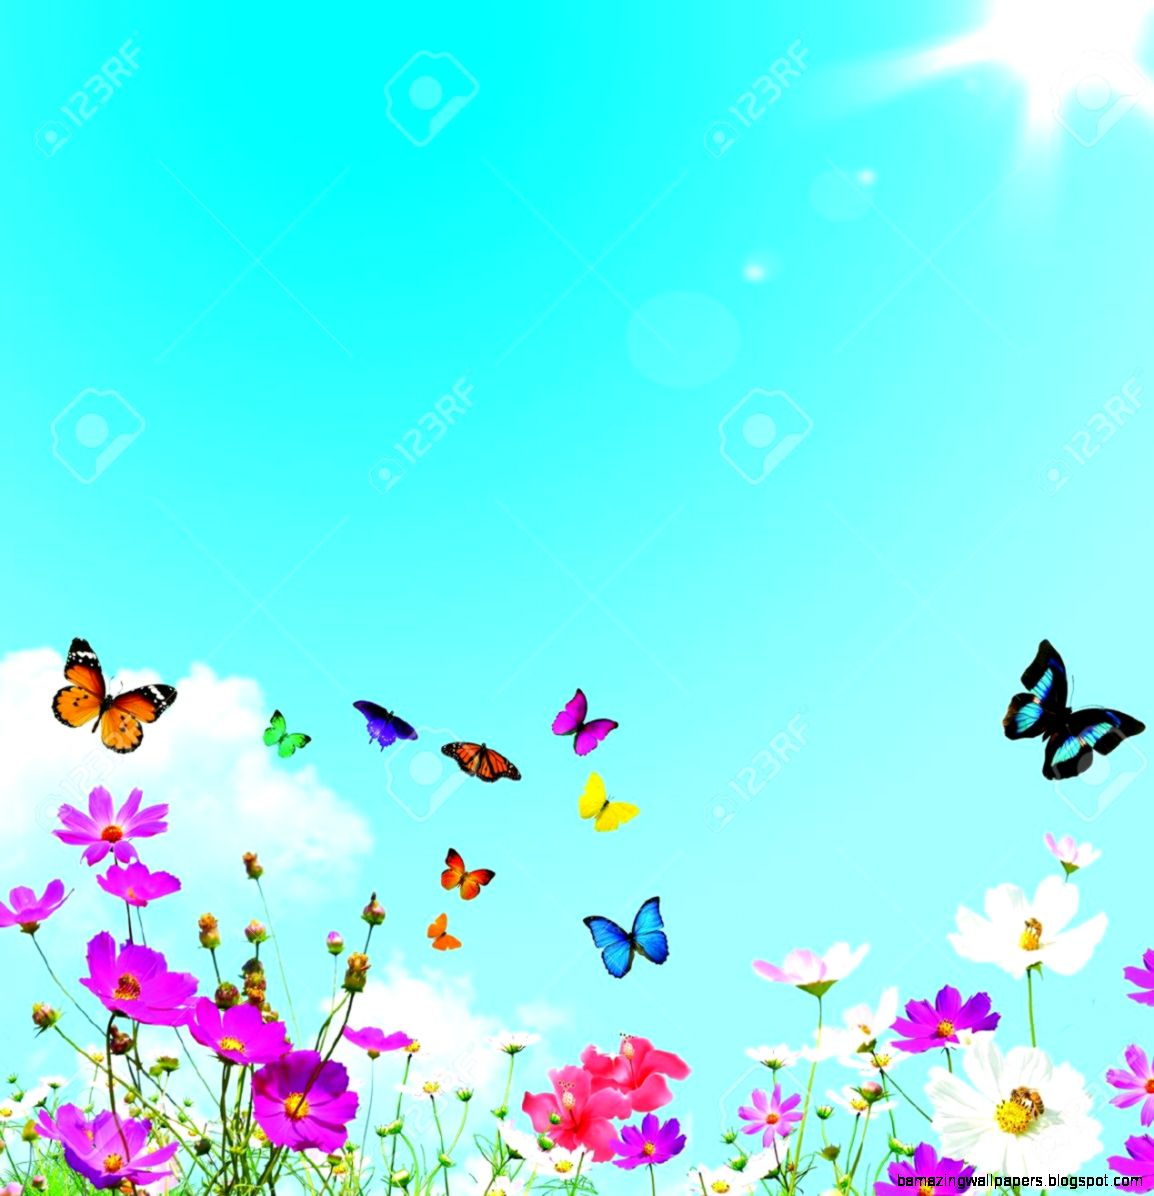 Colorful Spring Flowers And Butterflies Stock Photo Picture And